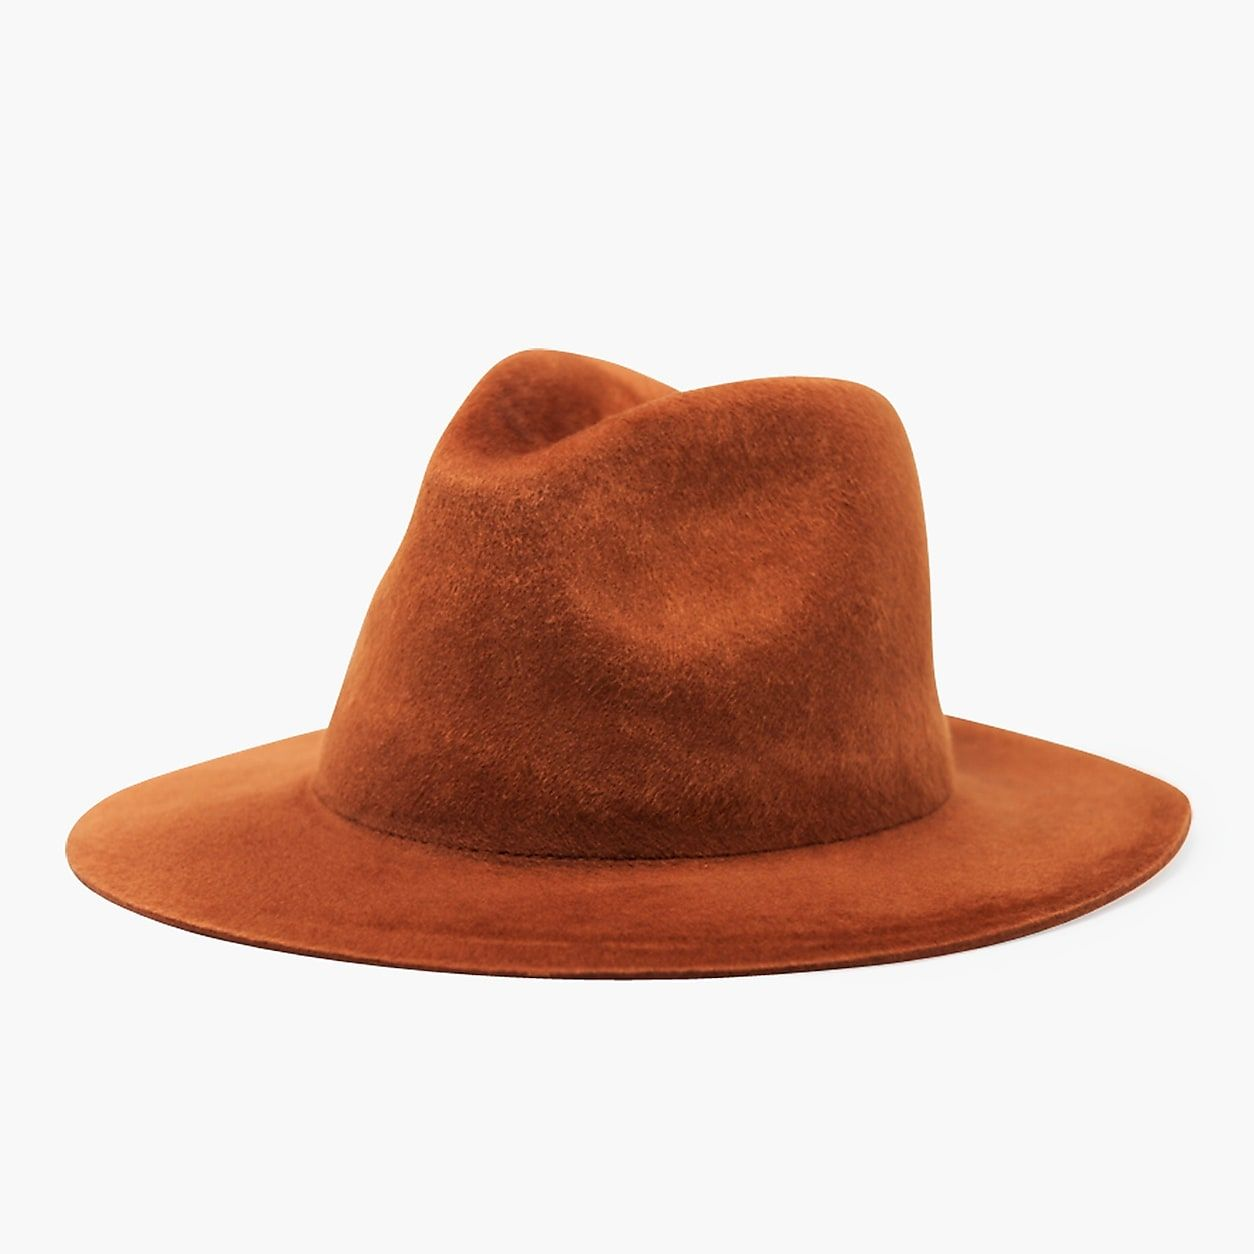 dfc30579e Wyeth Faye Fedora   Products   Crew clothing, Hats for women, Hats